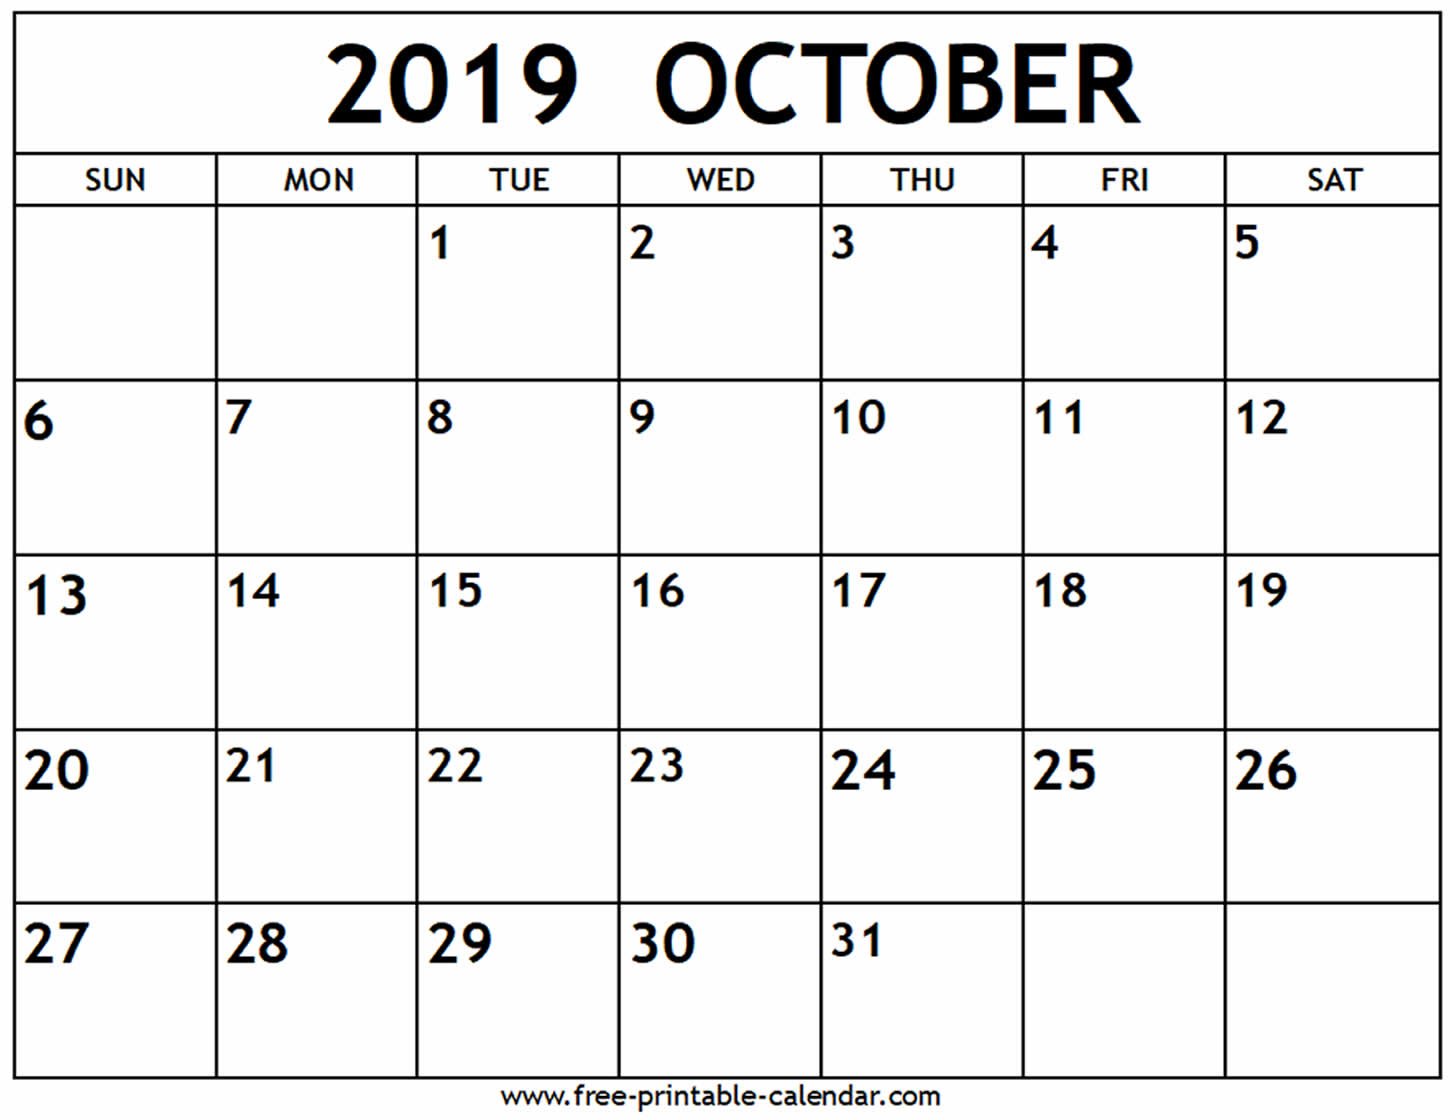 October 2019 Calendar - Free-Printable-Calendar in Calendars Sept And October 2019